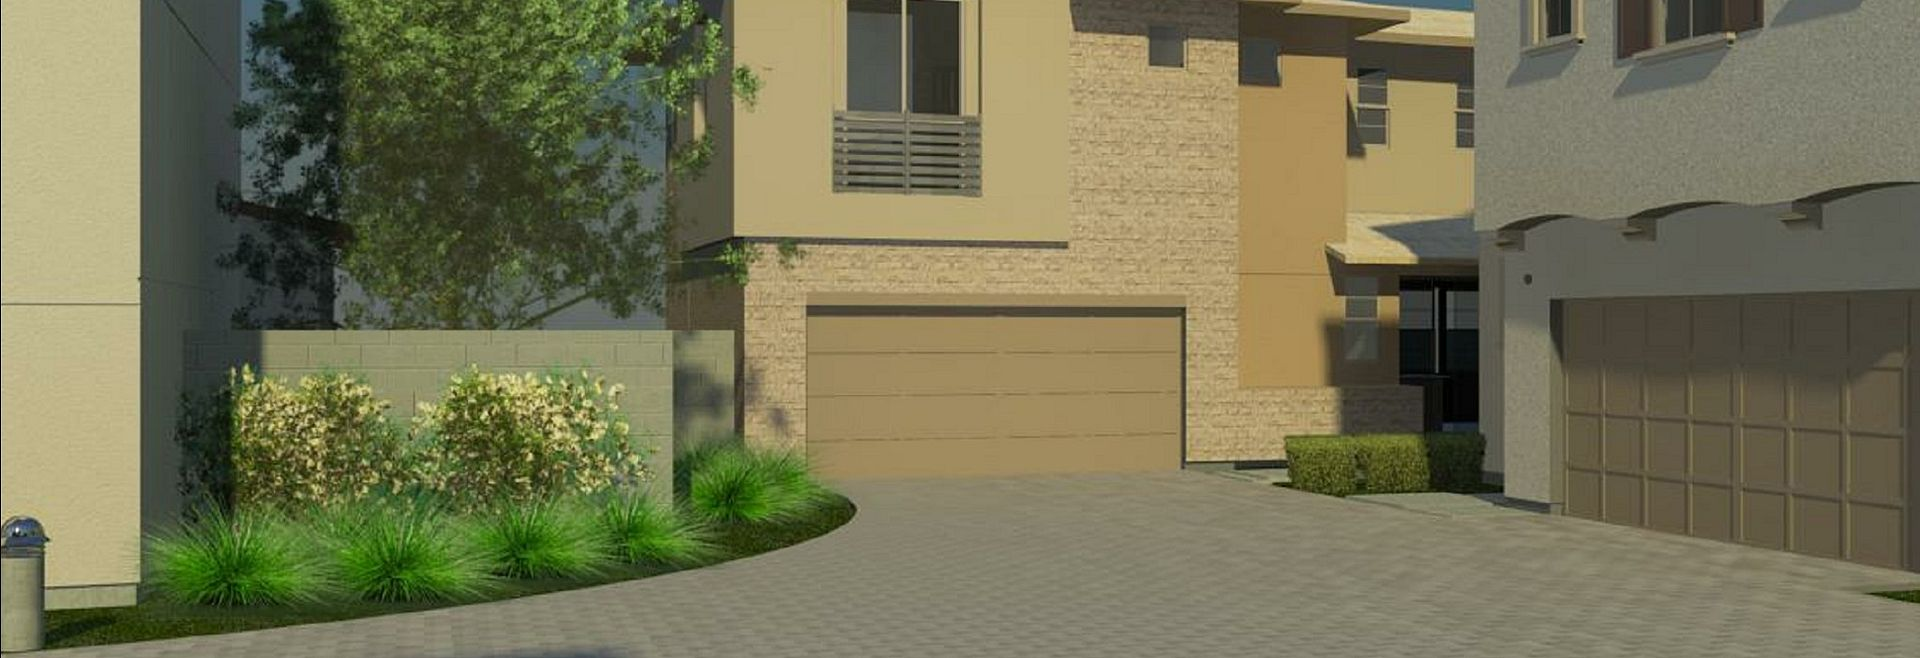 Conceptual Rendering Only of Driveway